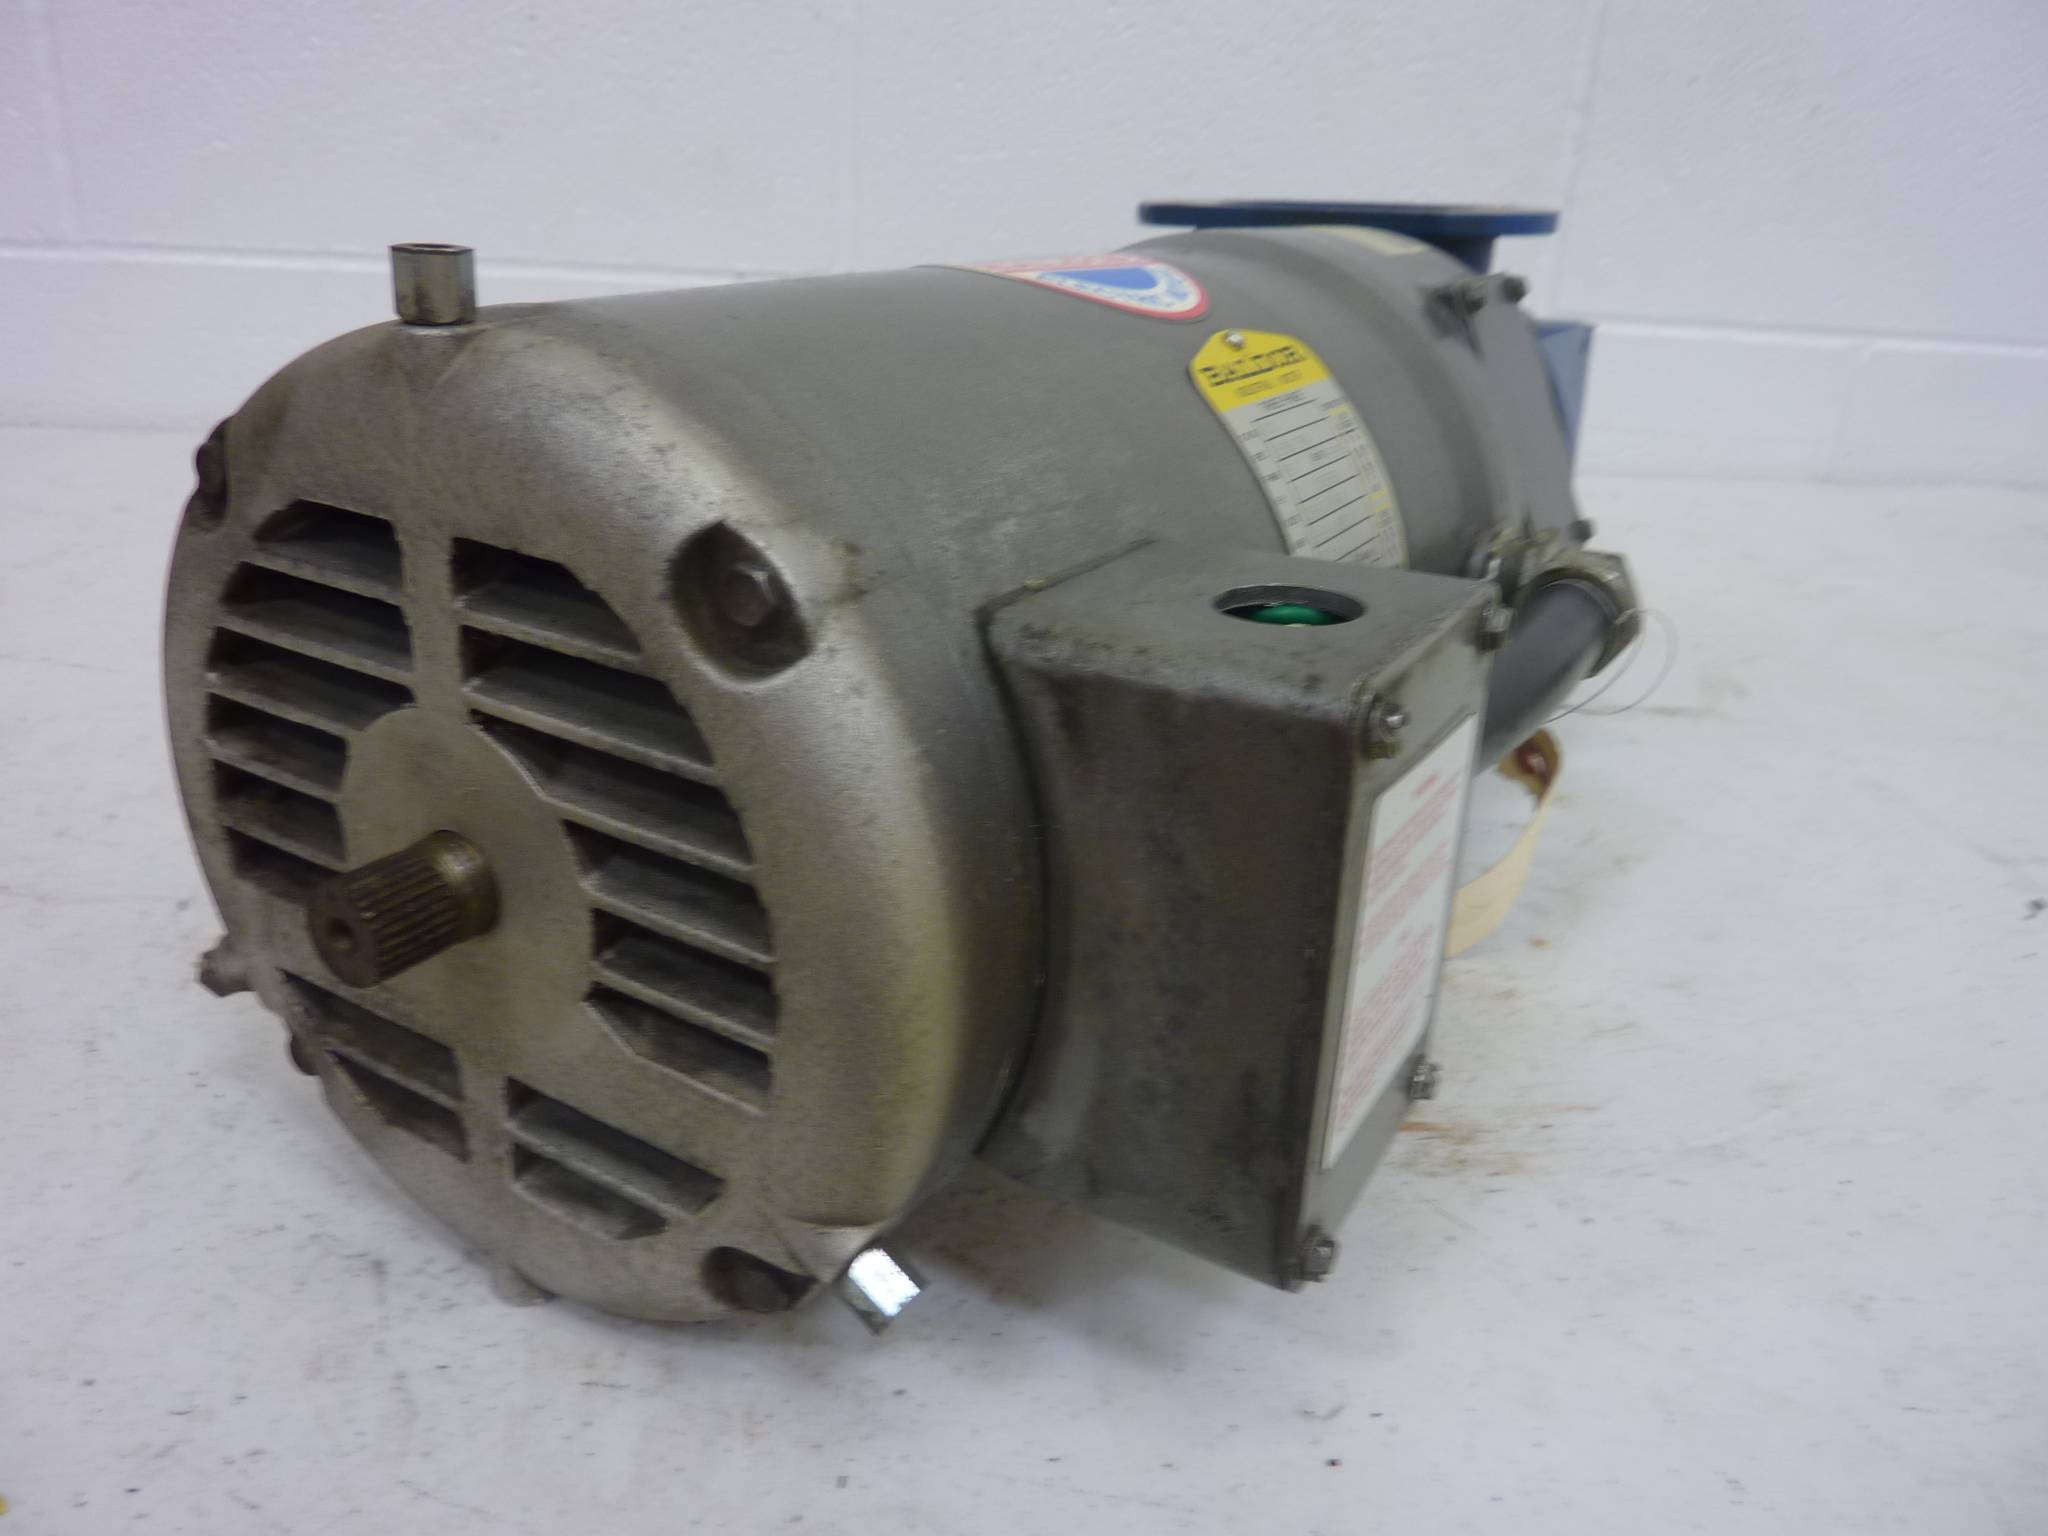 Baldor 2 hp motor w gearbox m00 used 57678 ebay for 56c frame motor adapter